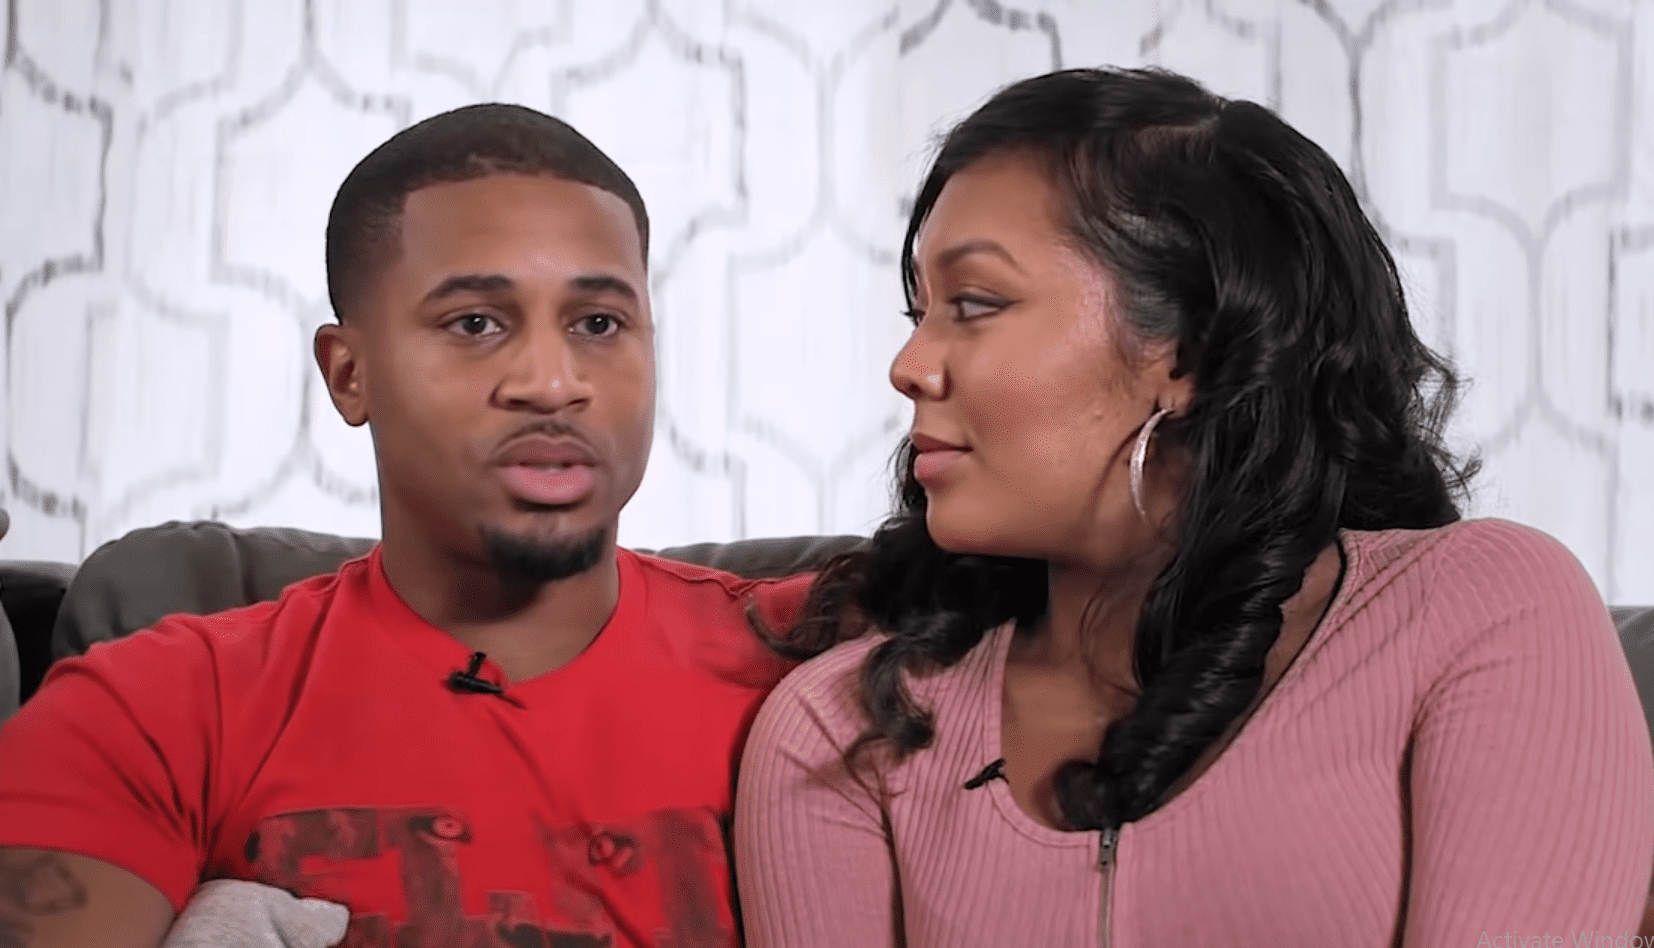 """Devale Ellis gets emotional reflecting on his wife, Khadeen's support during a """"dark time"""" in an interview with """"Black Love."""" 